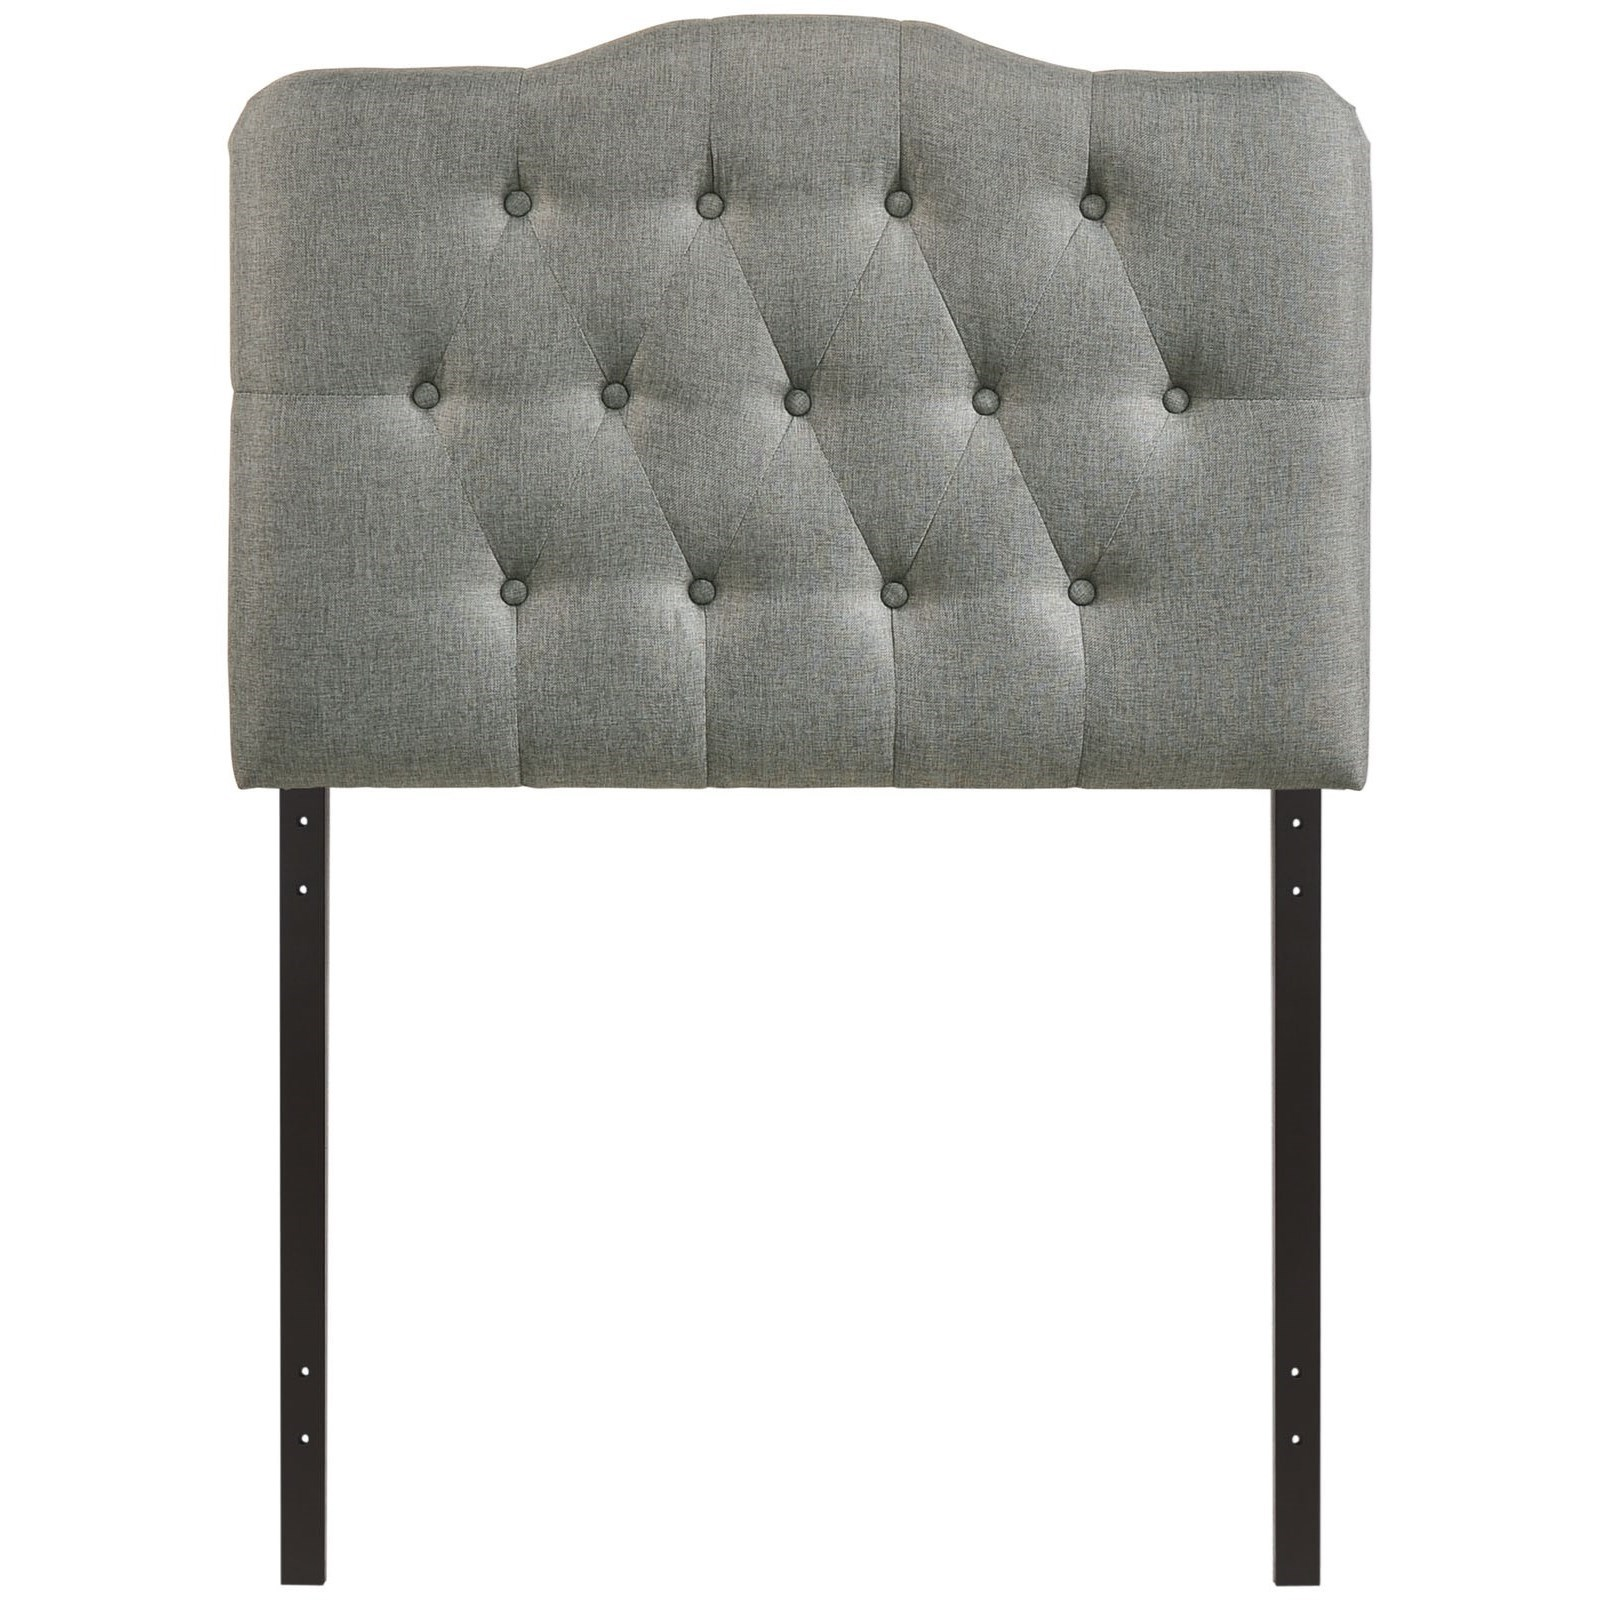 Annabel Twin Upholstered Headboard by Modway at Value City Furniture